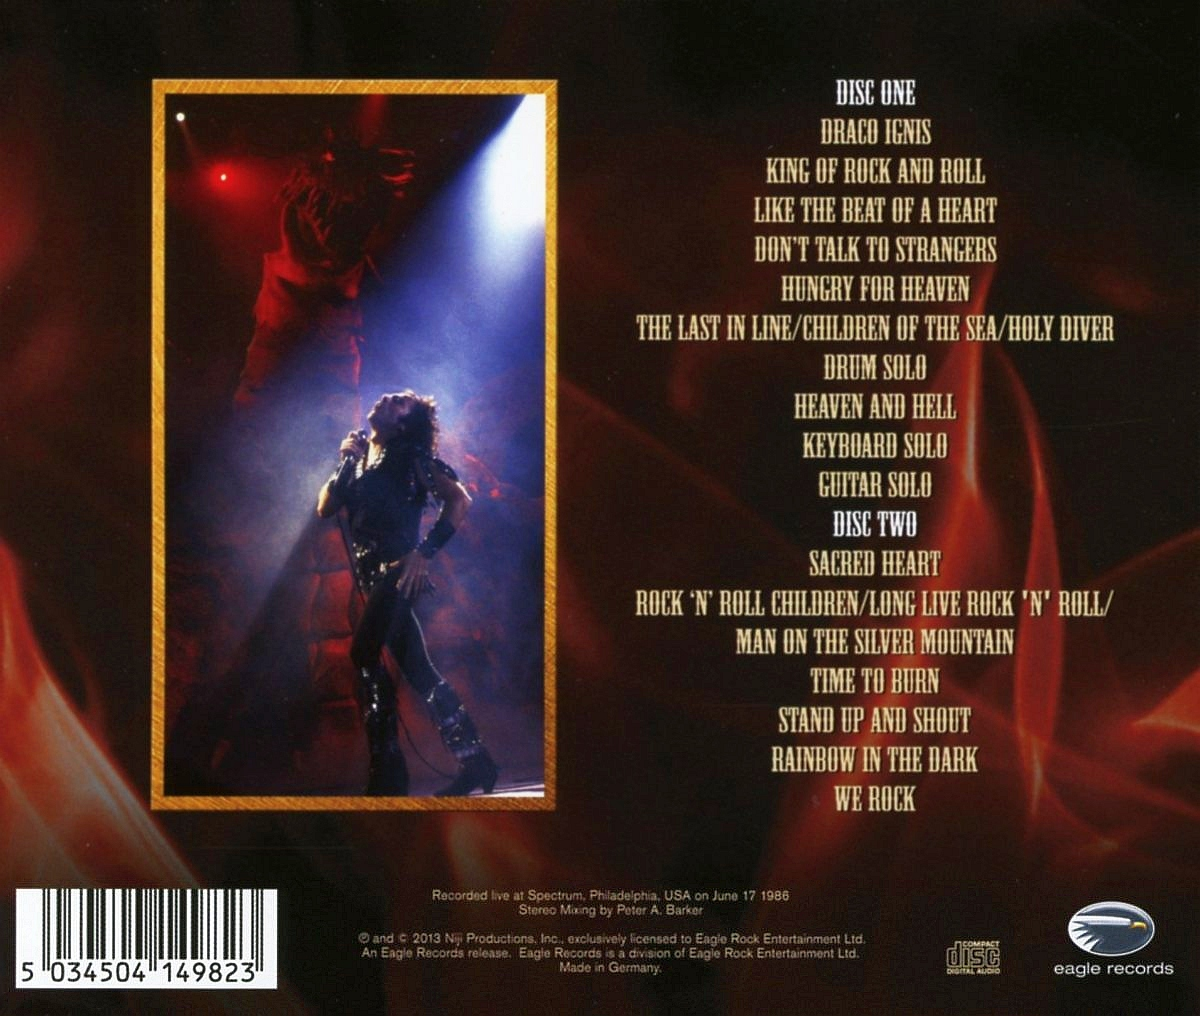 DIO - Finding The Sacred Heart ; Live In Philly 1986 (2013) back cover